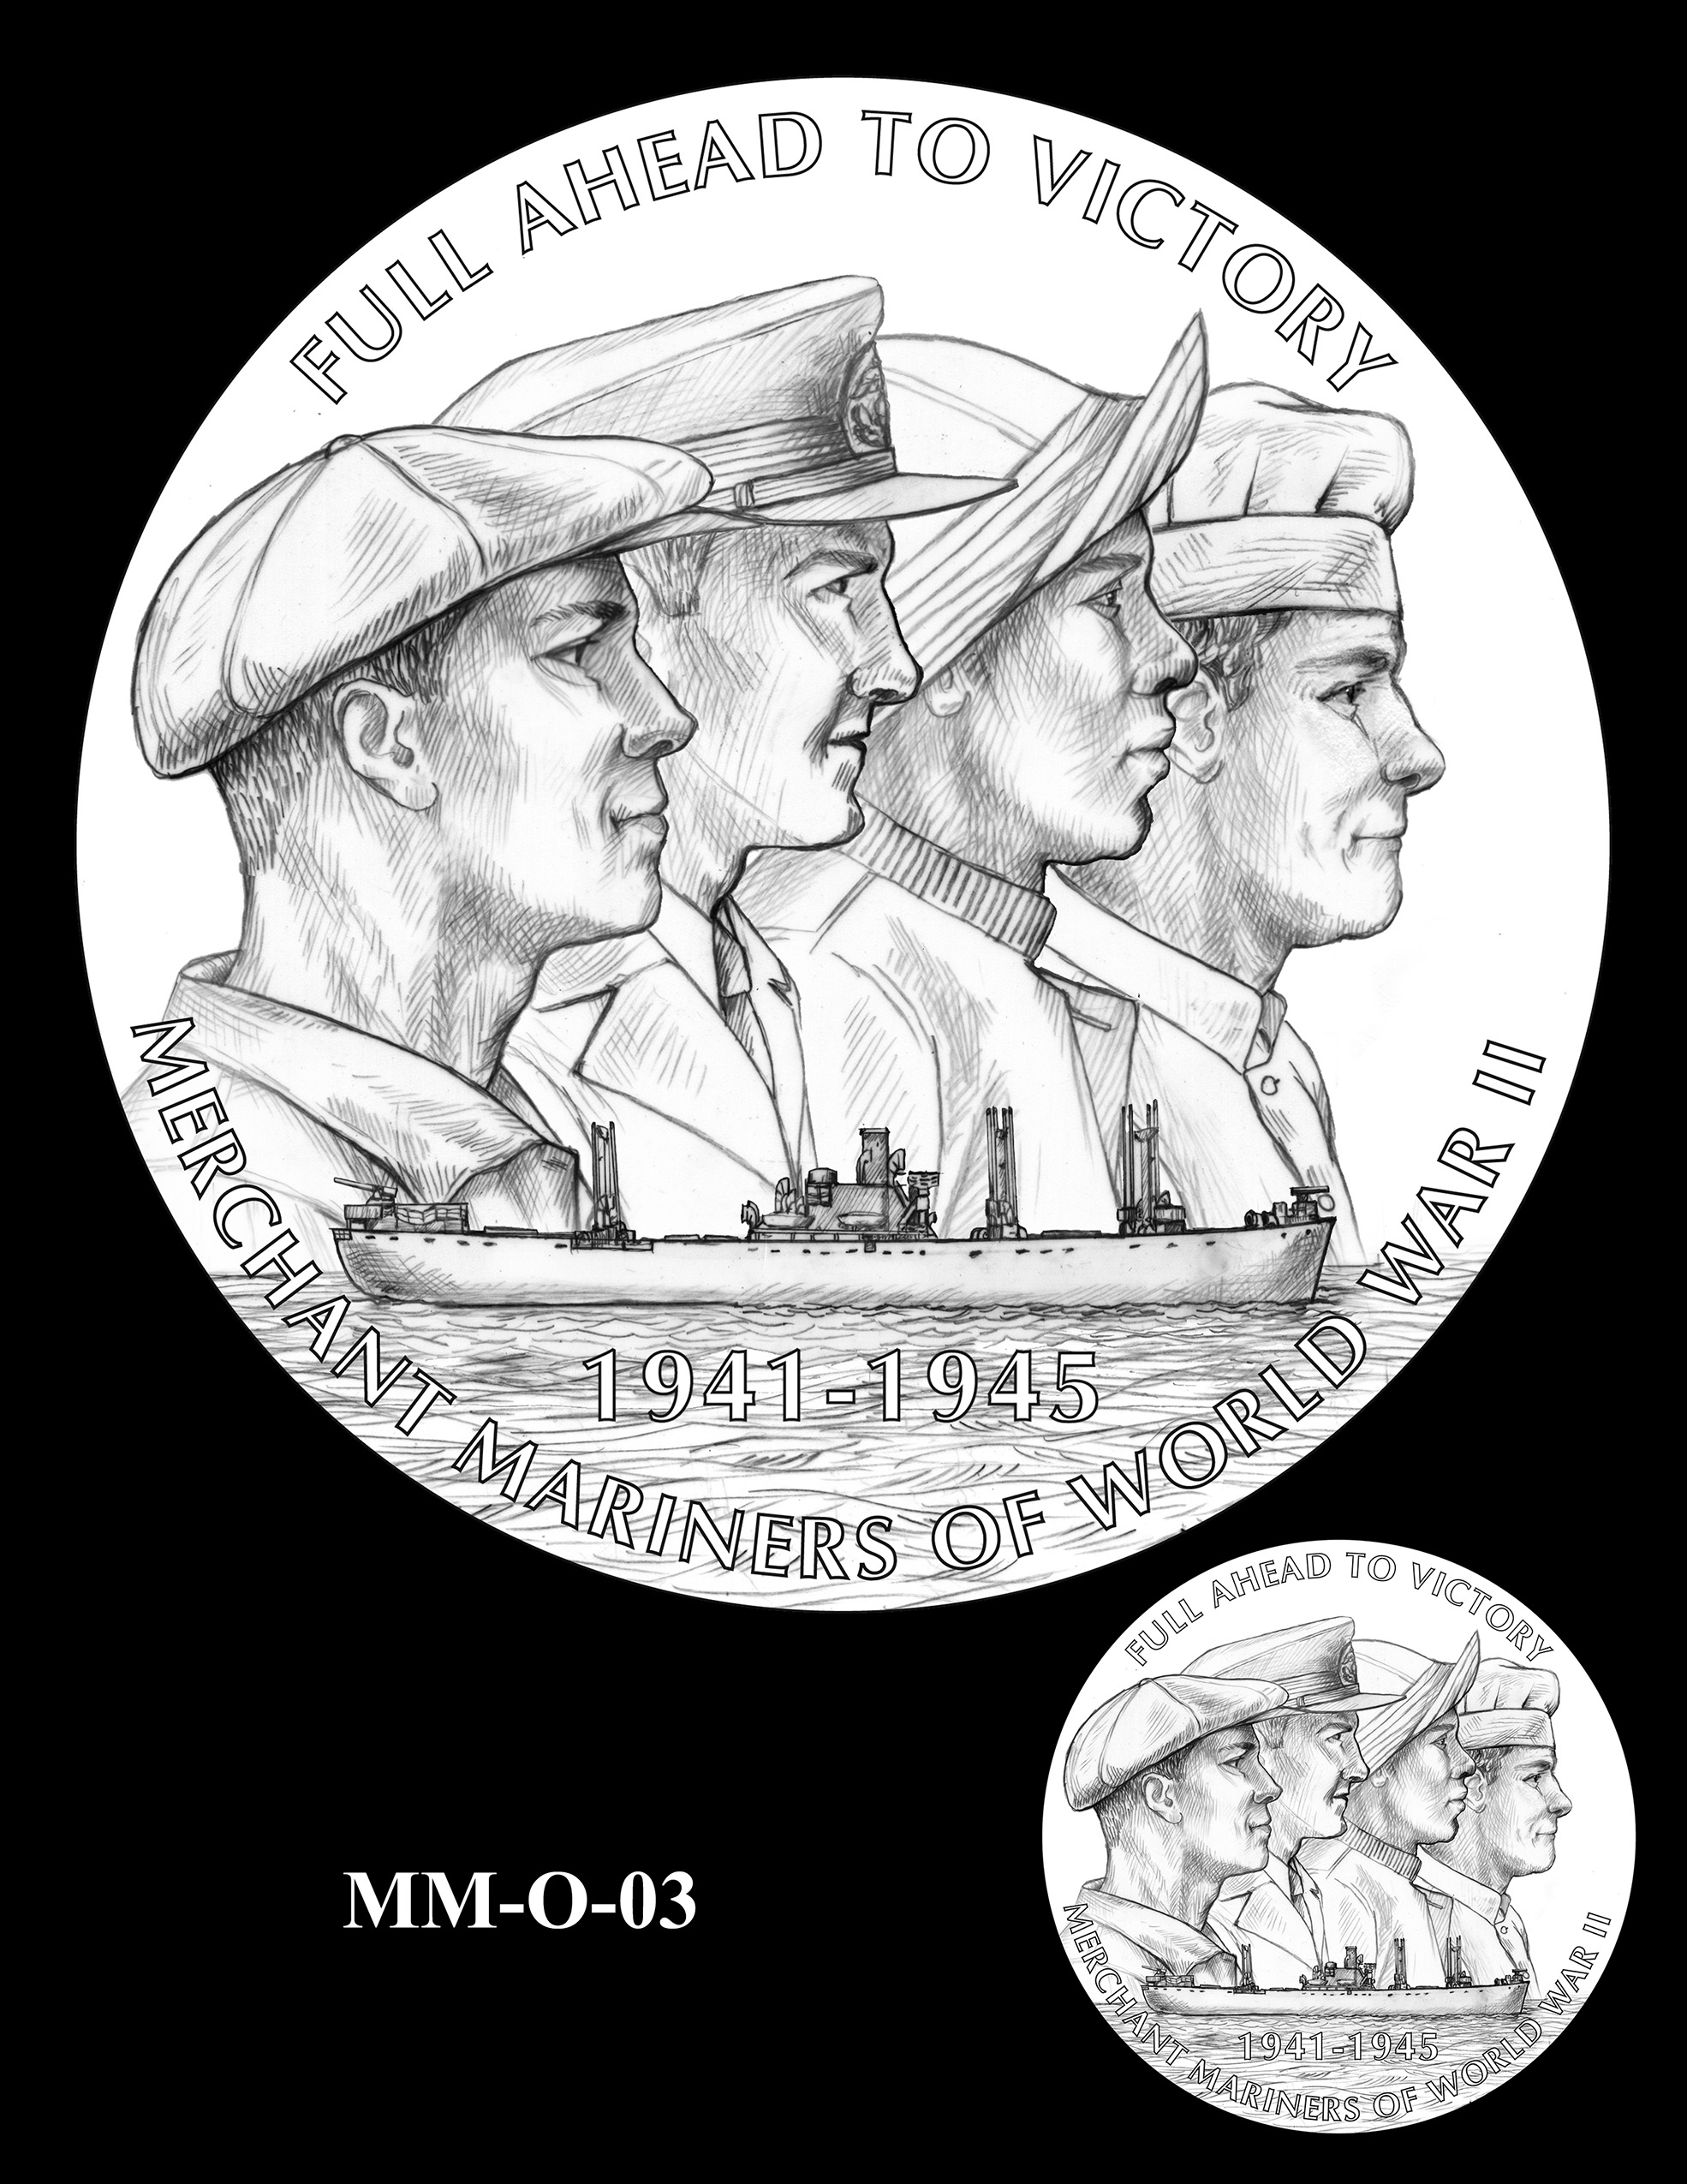 MM-O-03 -- Merchant Mariners of World War II Congressional Gold Medal